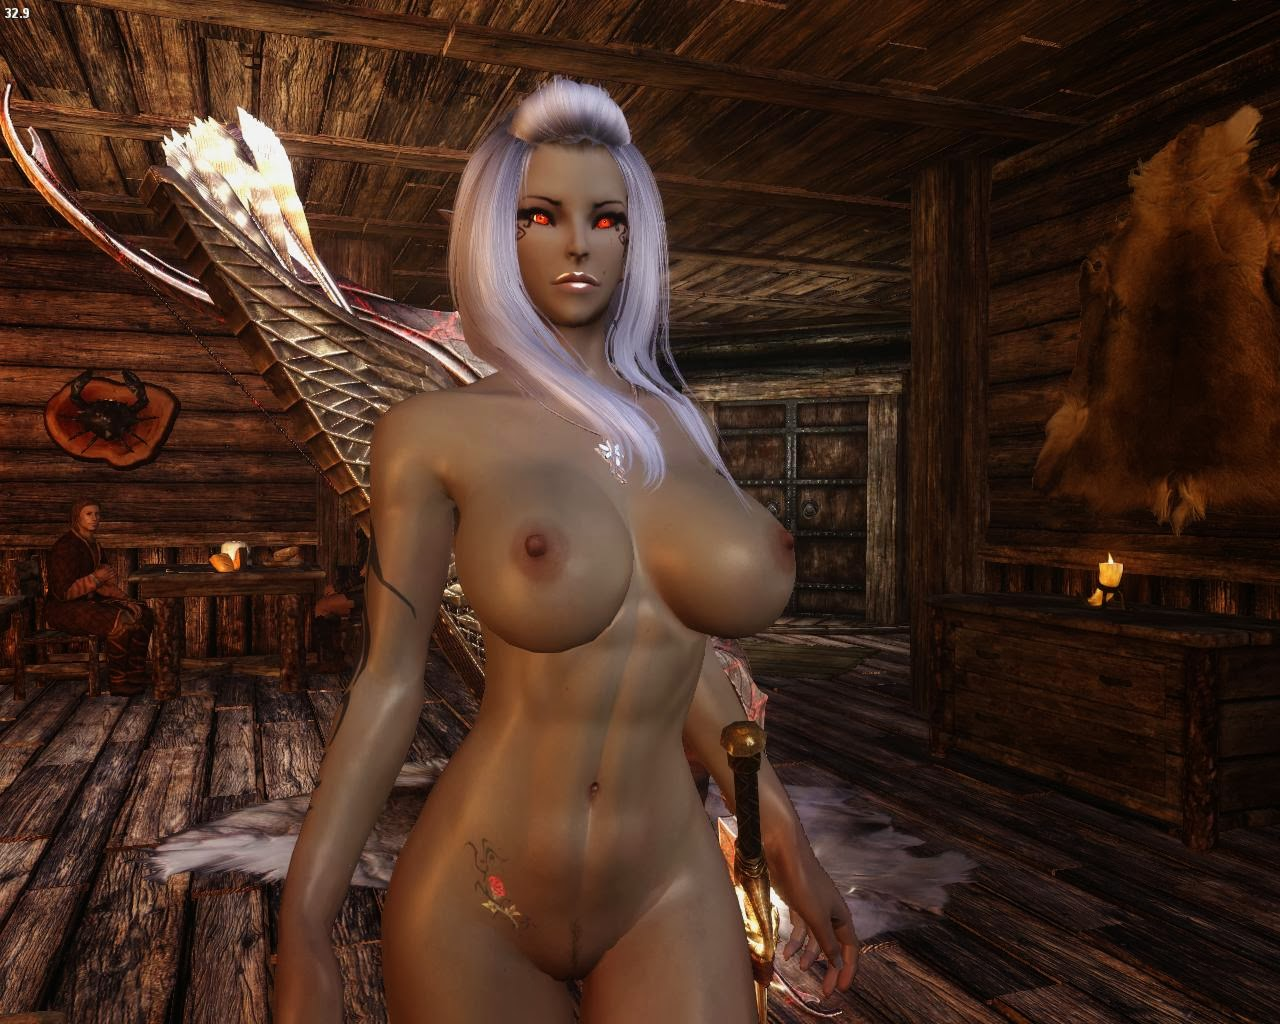 Naked skyrim women pics porno photos